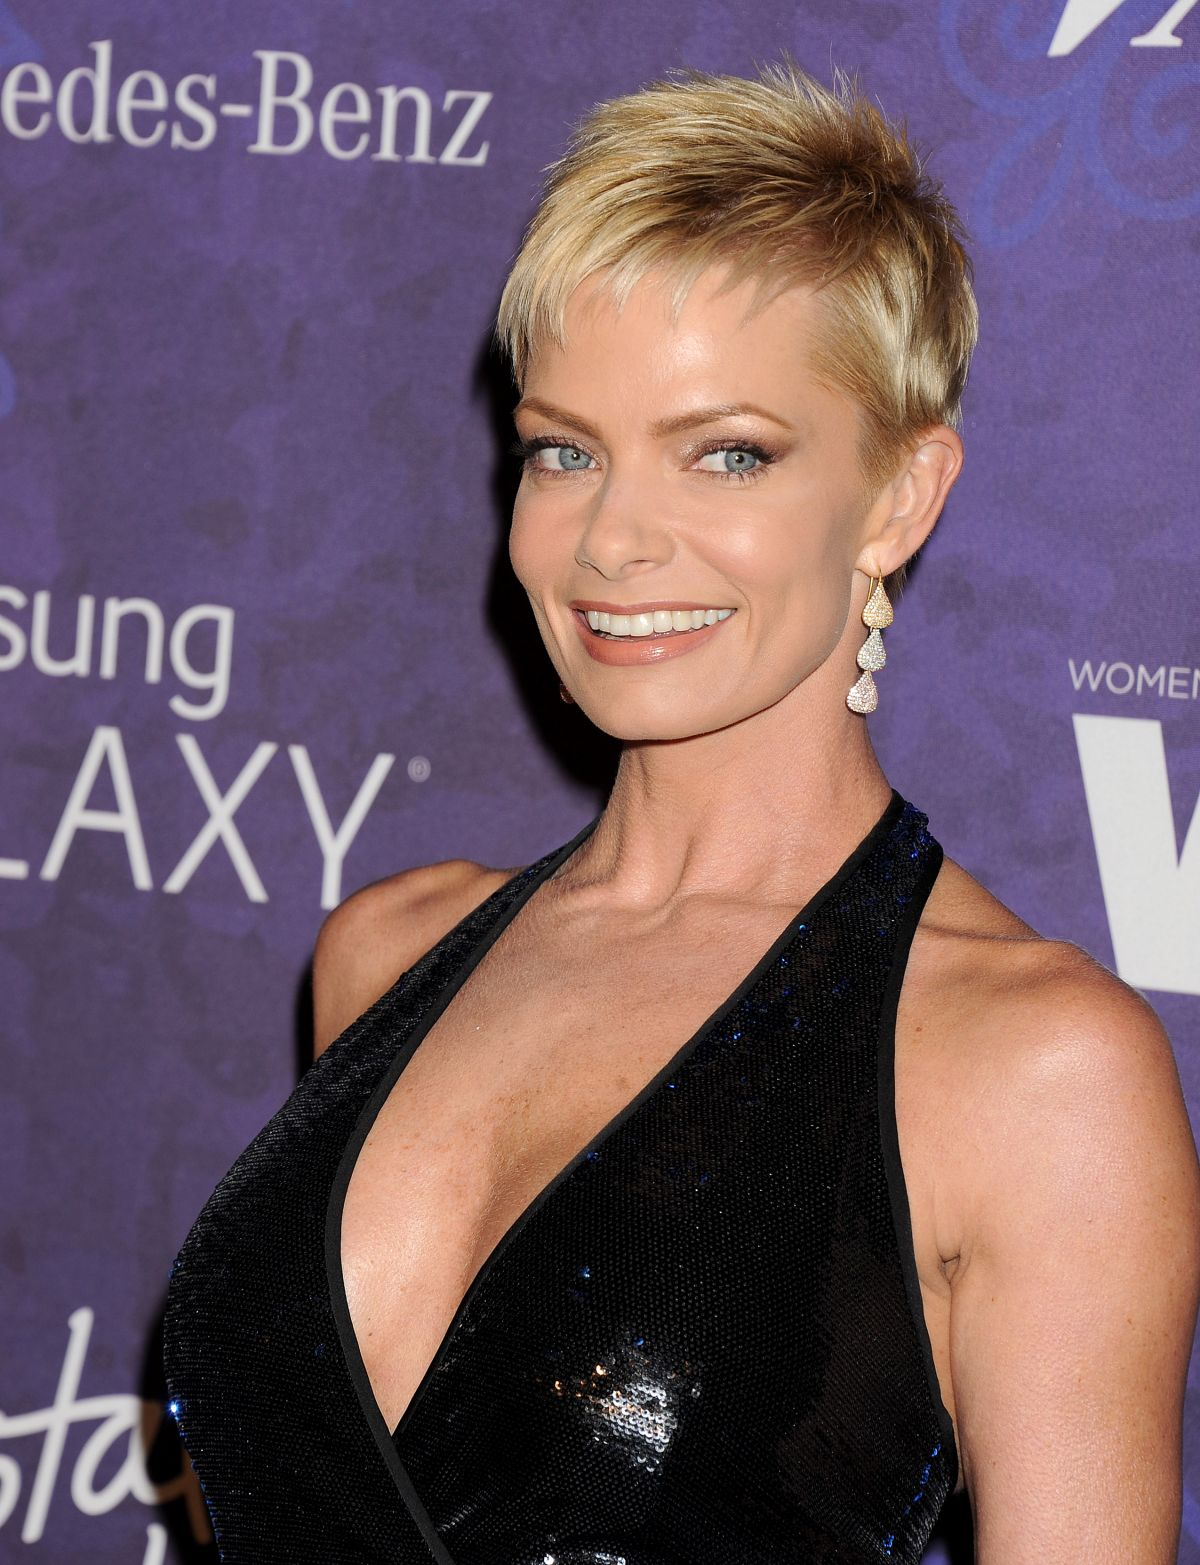 Images Jaime Pressly nude photos 2019